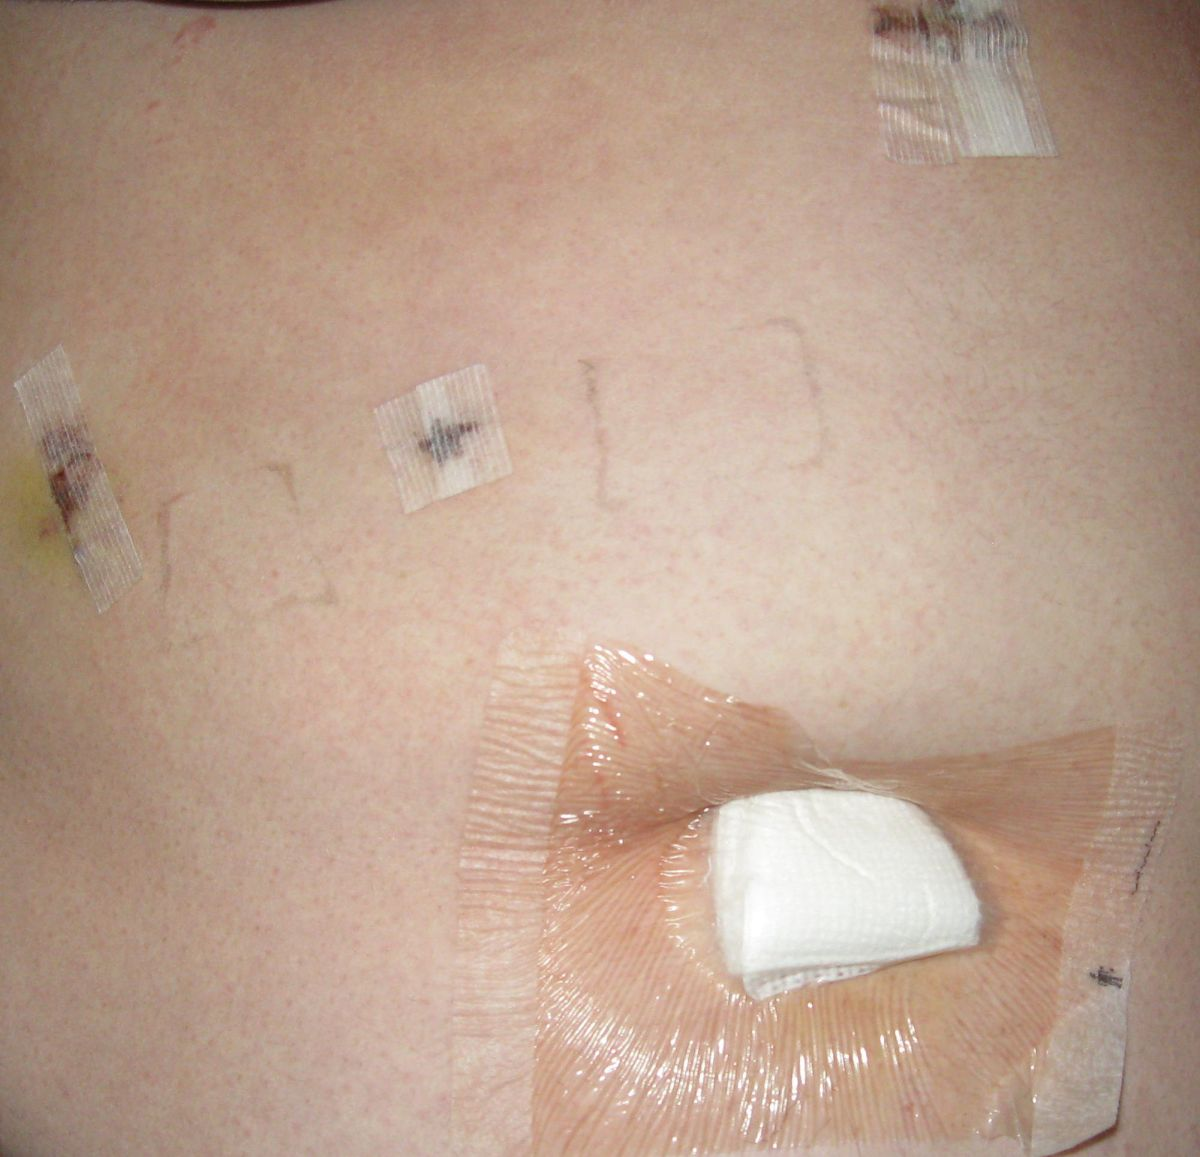 This is what my incisions looked like a few days after having my gallbladder removed.